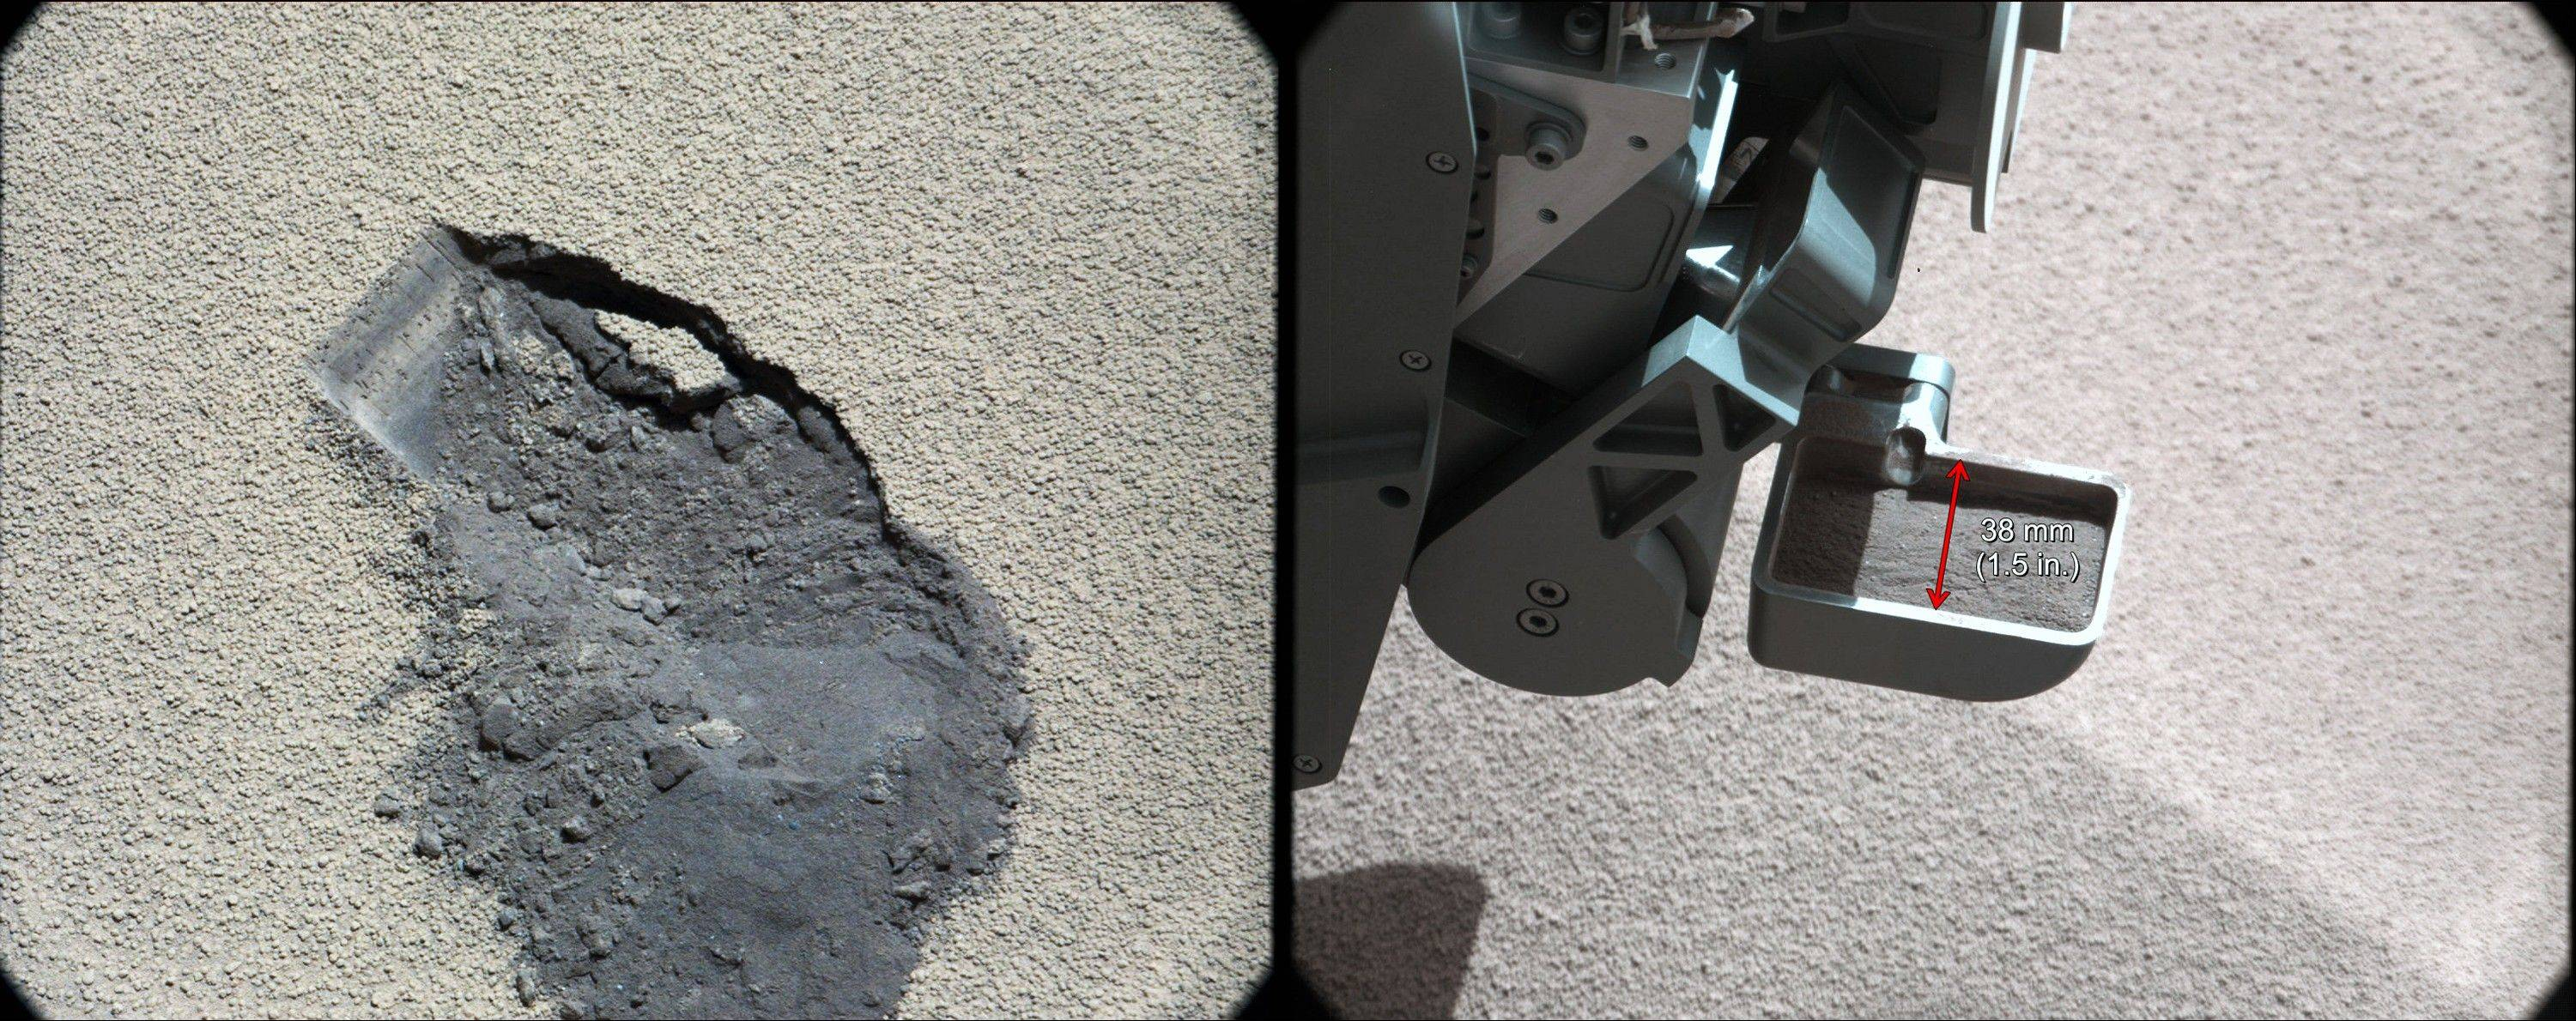 In this image released by NASA on Tuesday Oct. 30, 2012 shows a scoop of Martian soil collected by the NASA's Curiosity rover. An analysis of the soil released Tuesday reveals it contains similar minerals found on Hawaii's Mauna Kea. Curiosity landed on Mars in August on a two-year mission to study whether the environment was habitable.